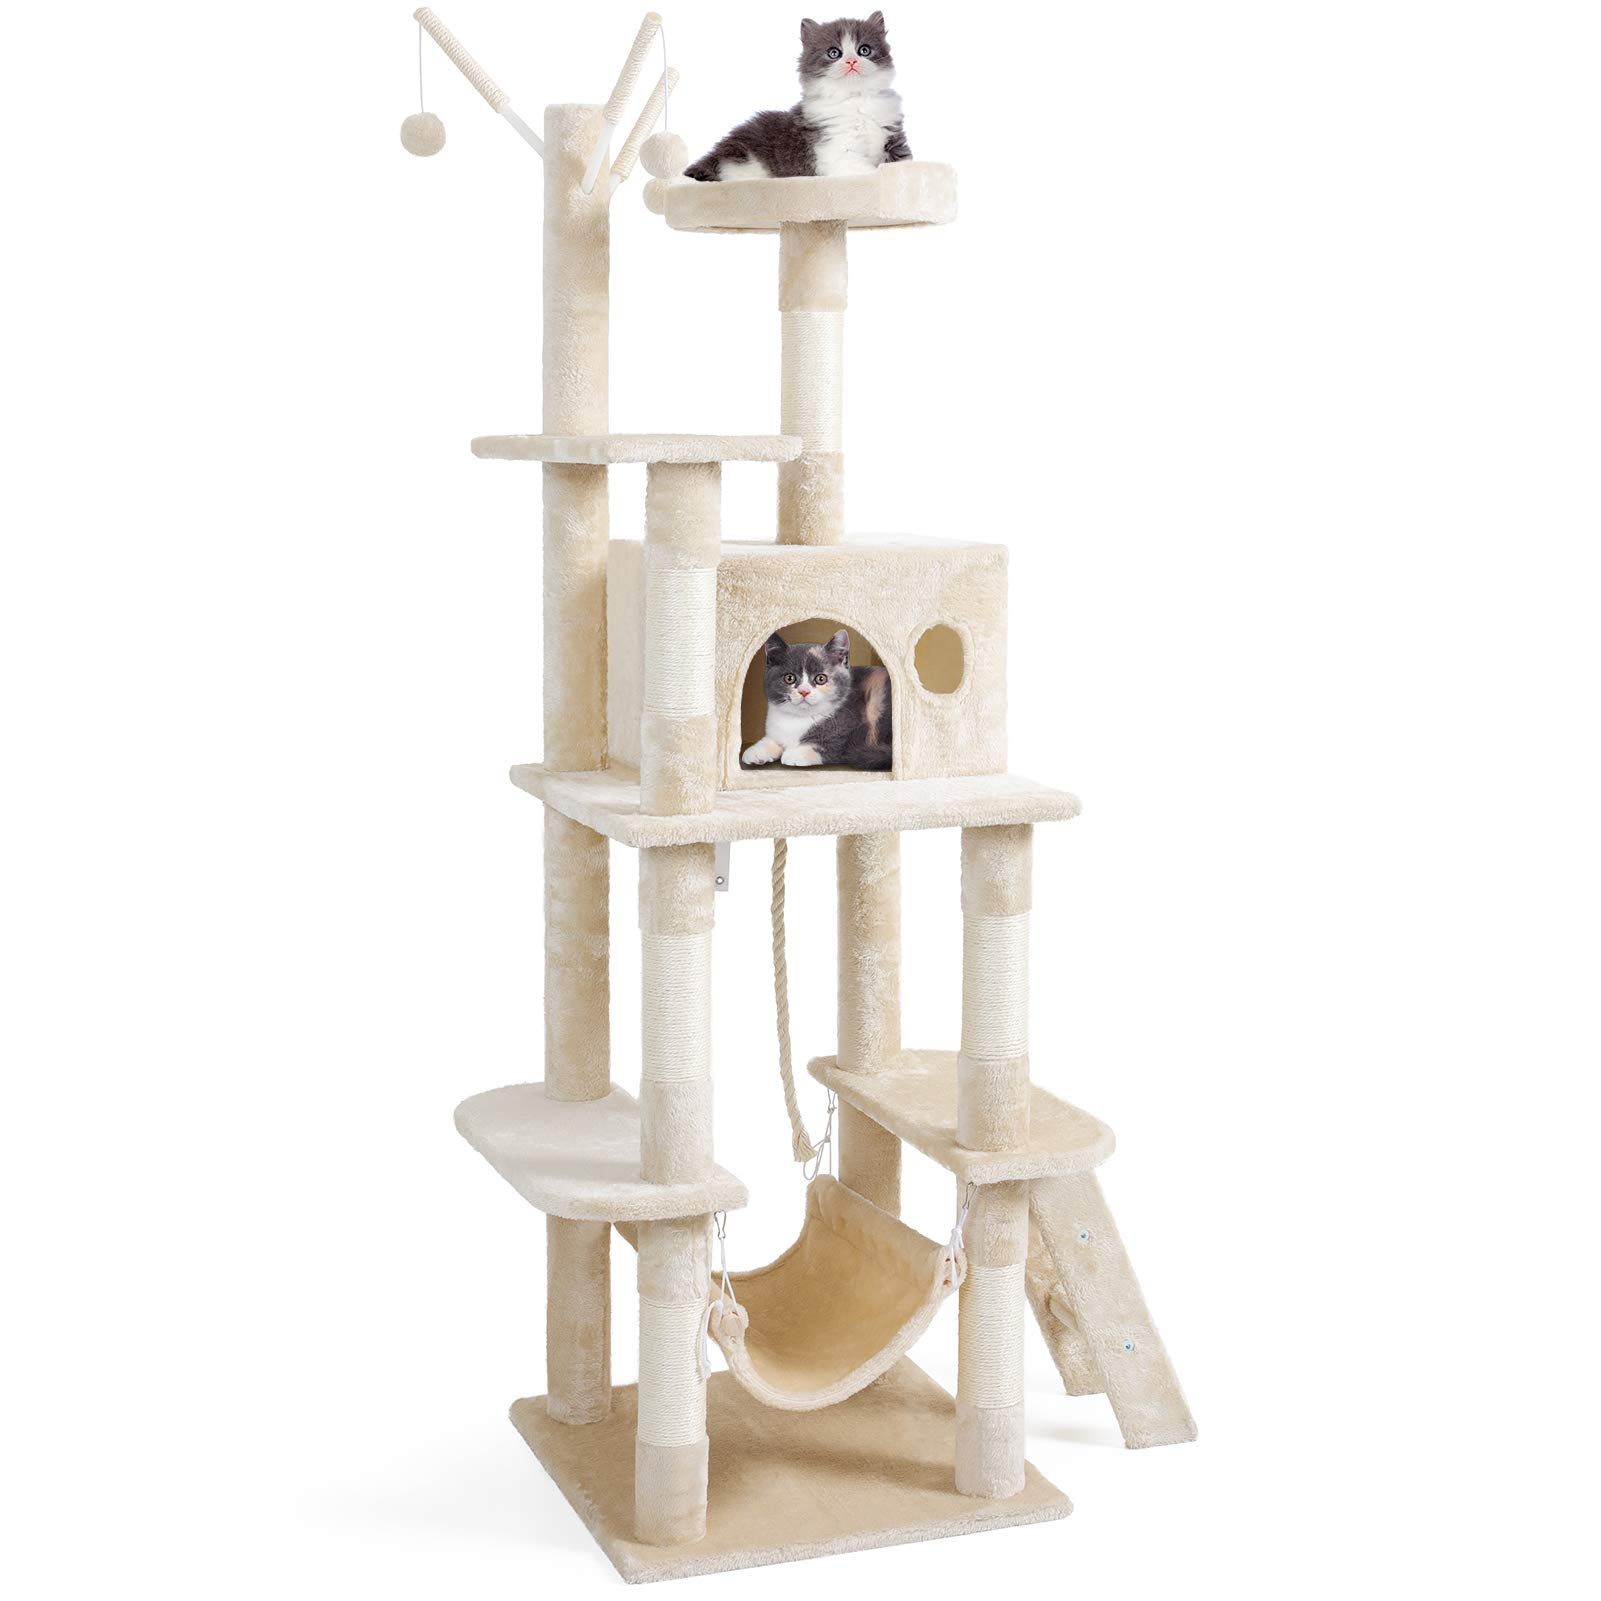 "JOYO Cat Tree Tower, 58"" Cat Tower Multi-Level Cat Tree House with Sisal-Covered Scratching Posts, Top Perch, Ladder and Hammock, Cat Activity Tree, and Condo Furniture for Kittens Pet House Play"